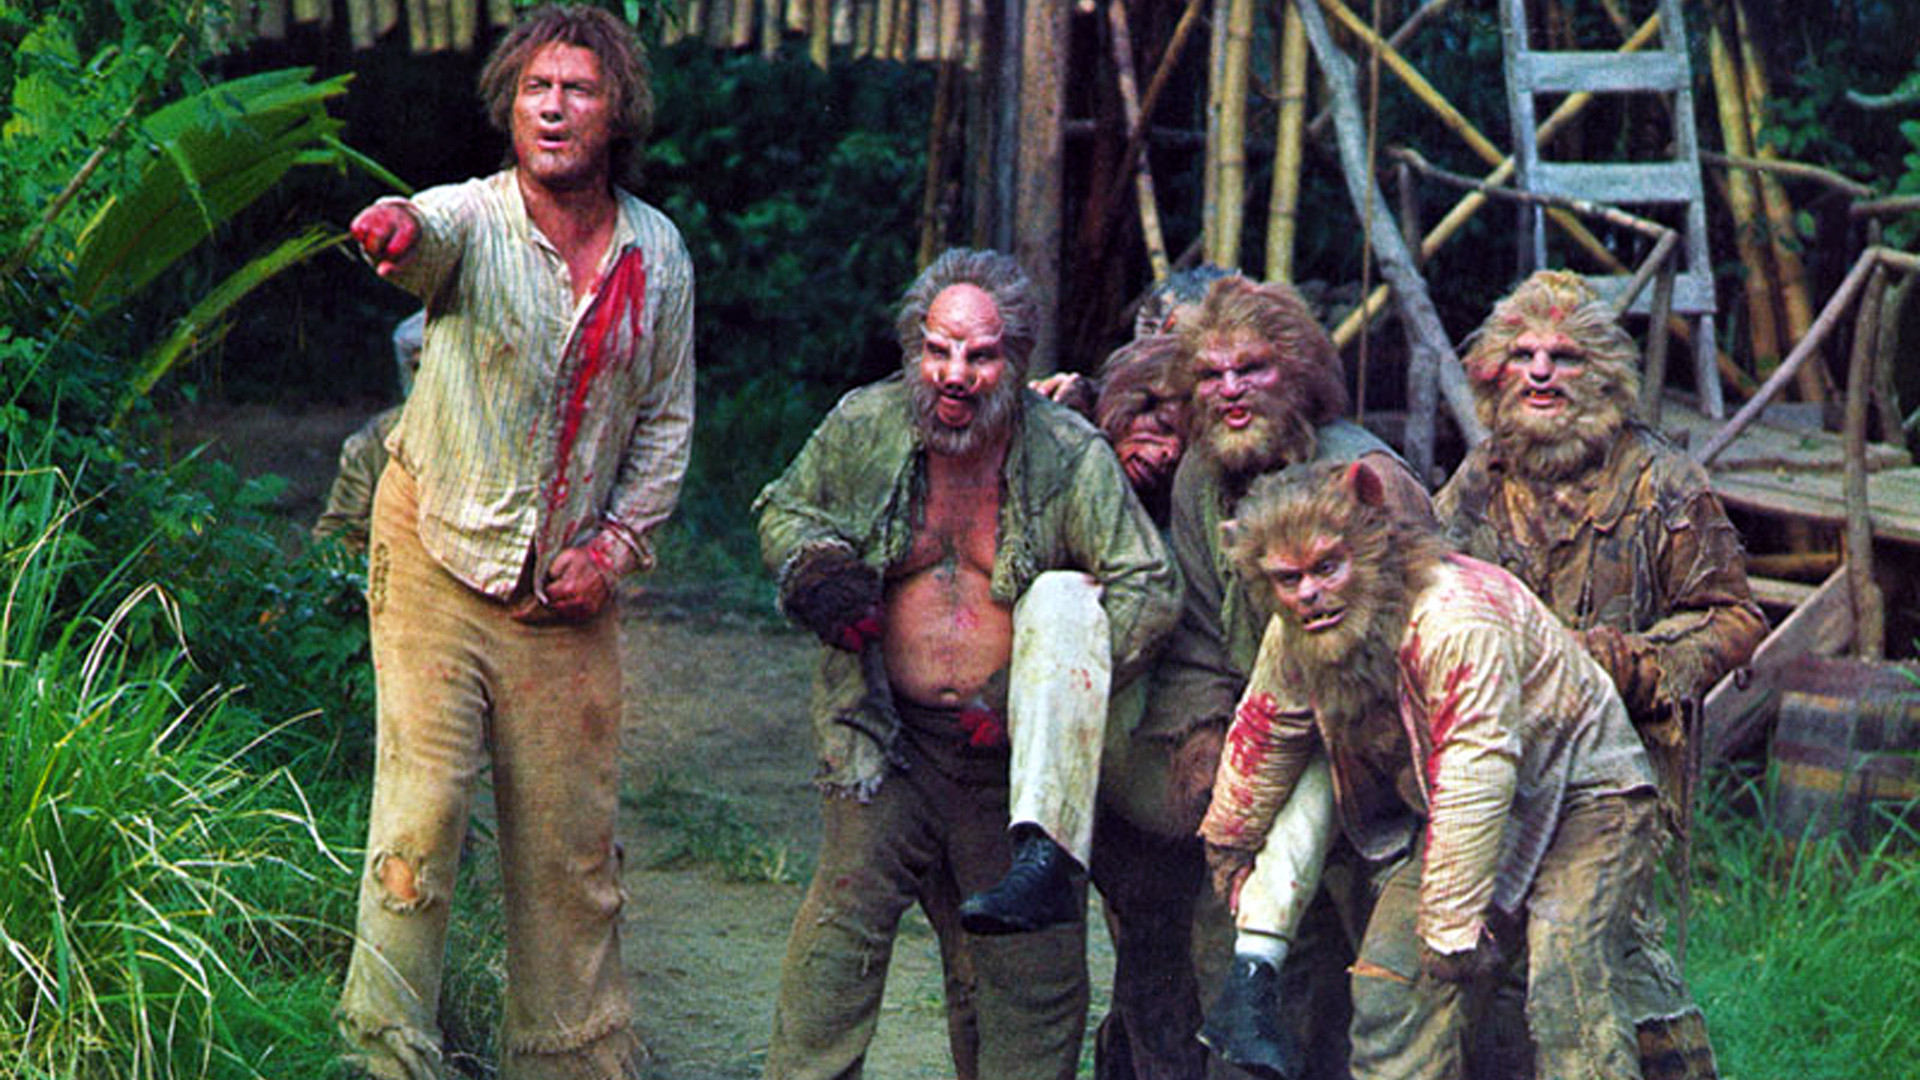 the island of doctor moreau The moreau island experiment from the beginning, val kilmer made the production a living hell for all concerned during the first two days he failed to show up completely, with his agent saying every val movie loses the first two days.